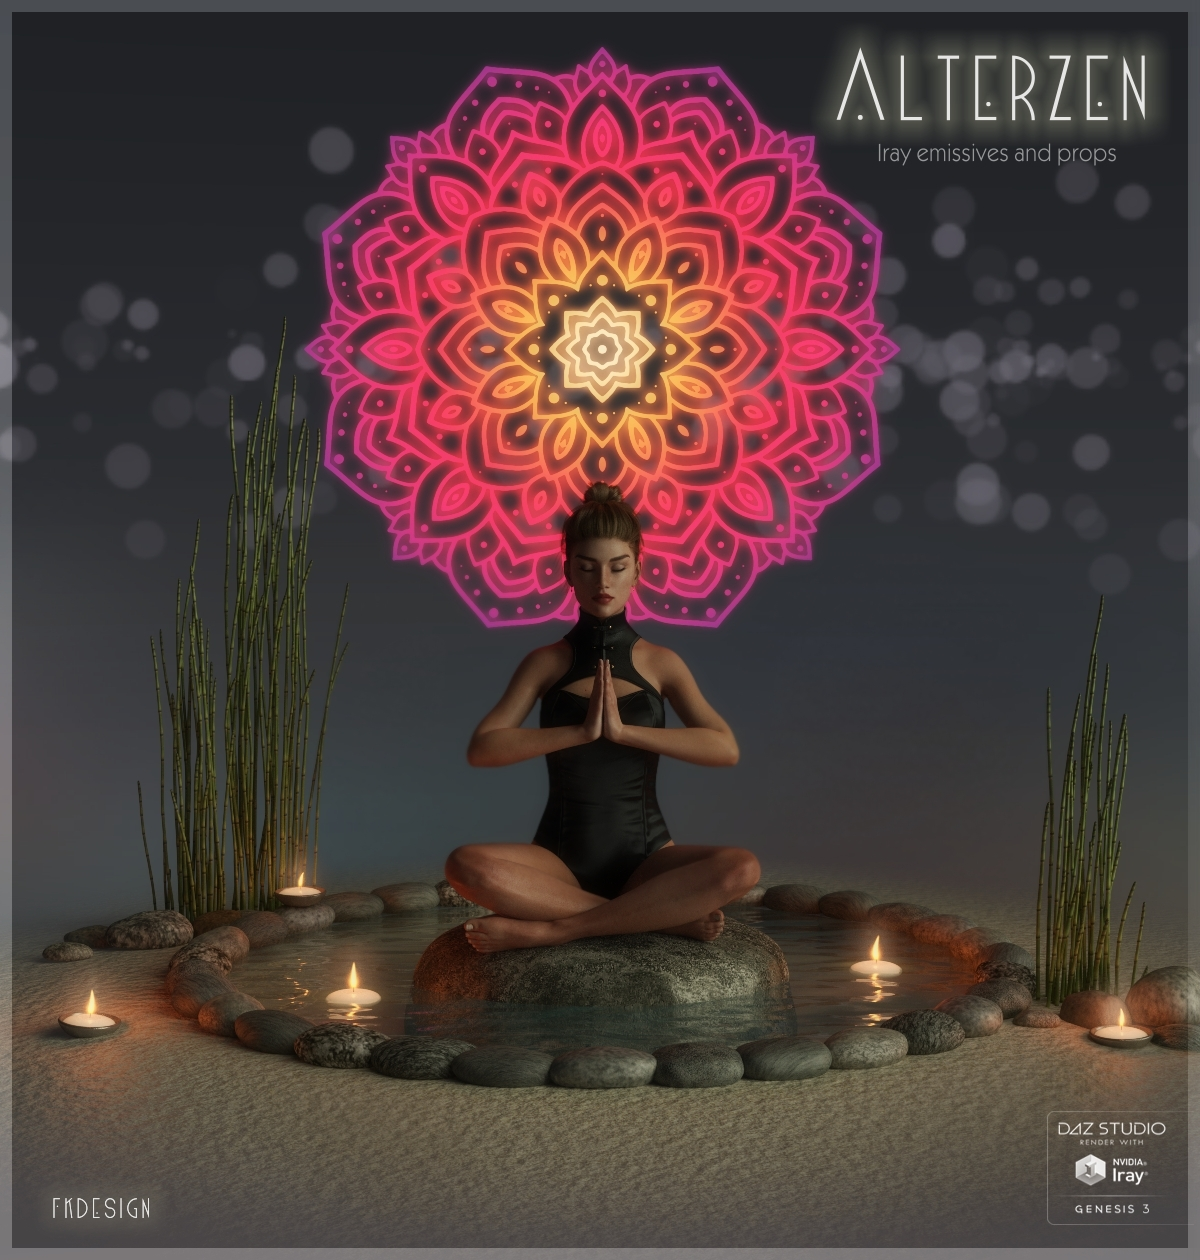 AlterZen - Iray Emissives and Props